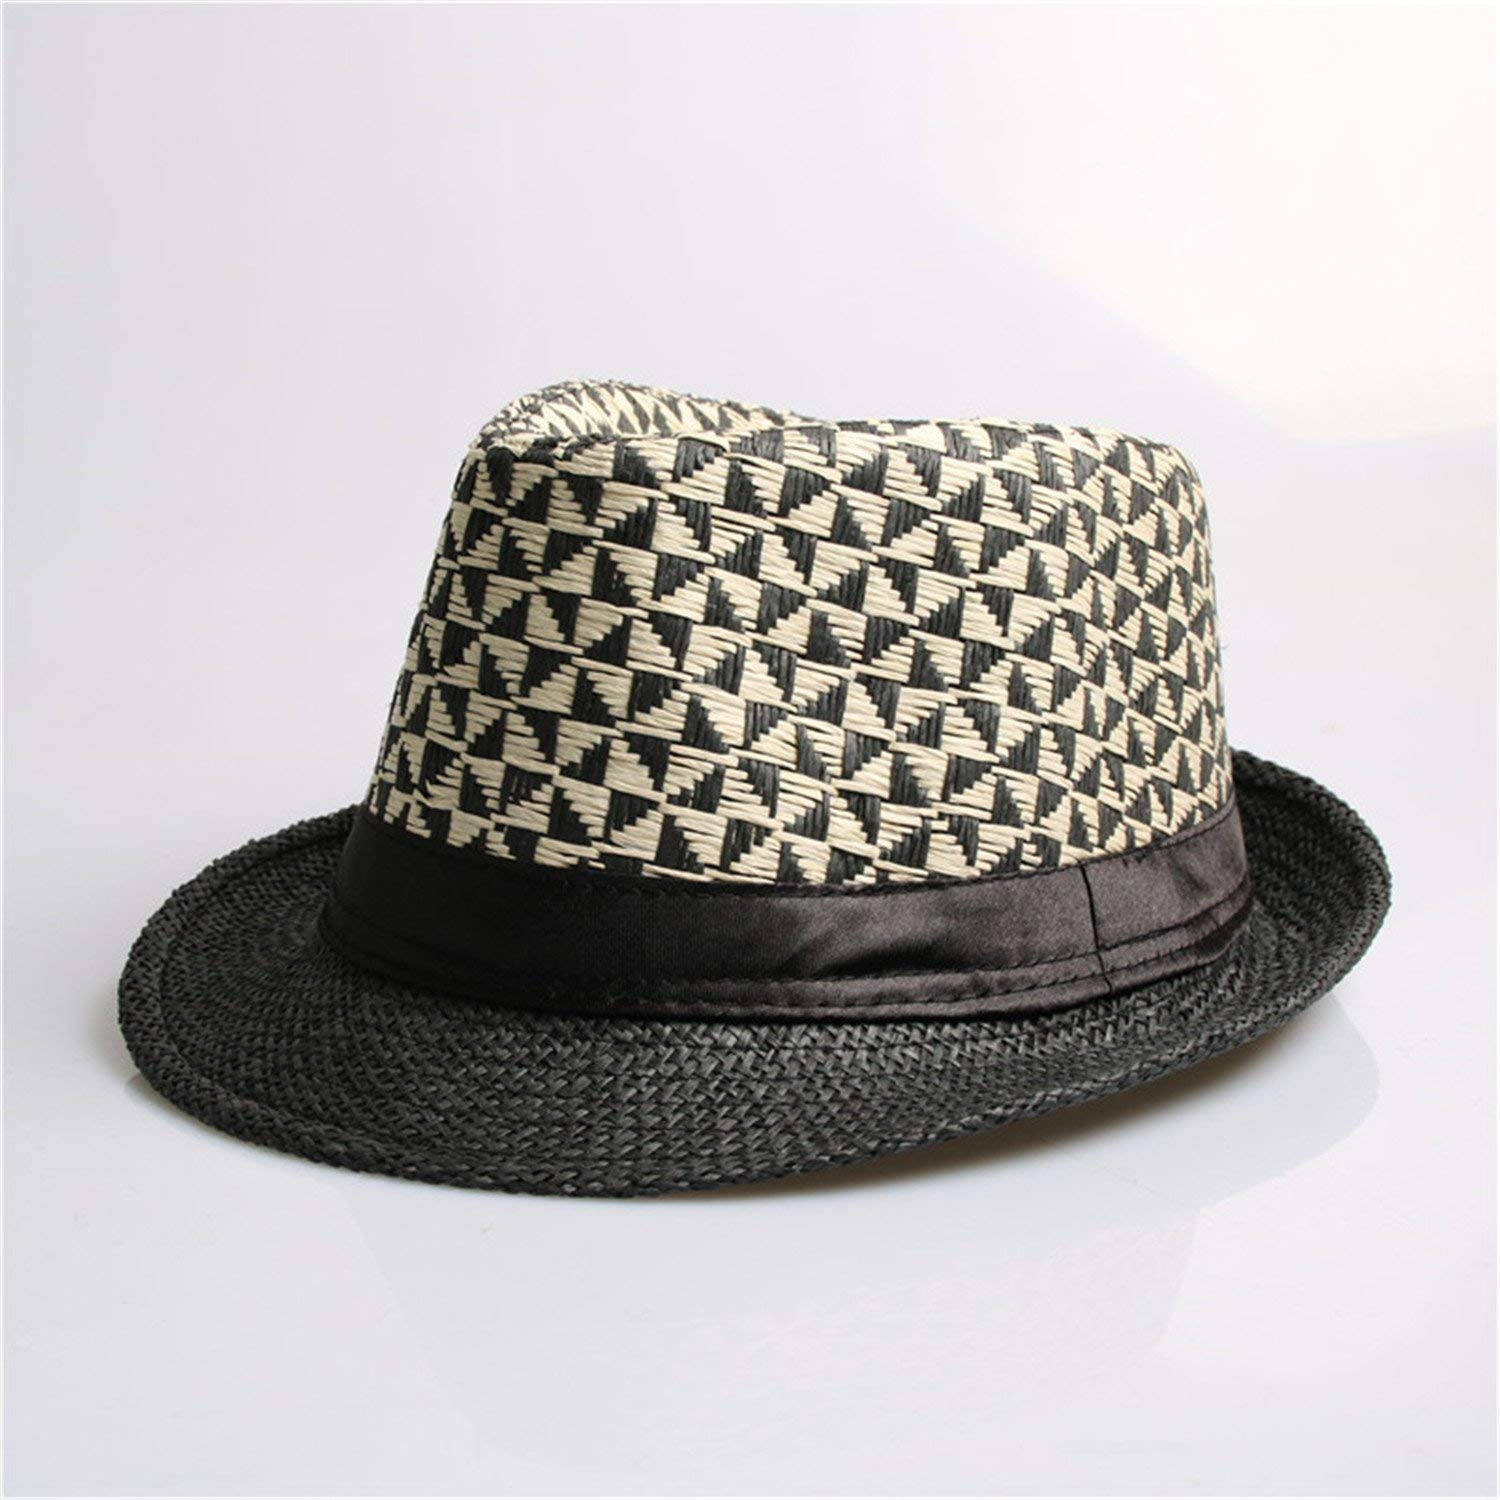 0111ed42ccc Get Quotations · Trendy Fashion Summer Straw Man and Women s Sun Hats  Fedora Trilby Gangster Cap Summer Beach Women